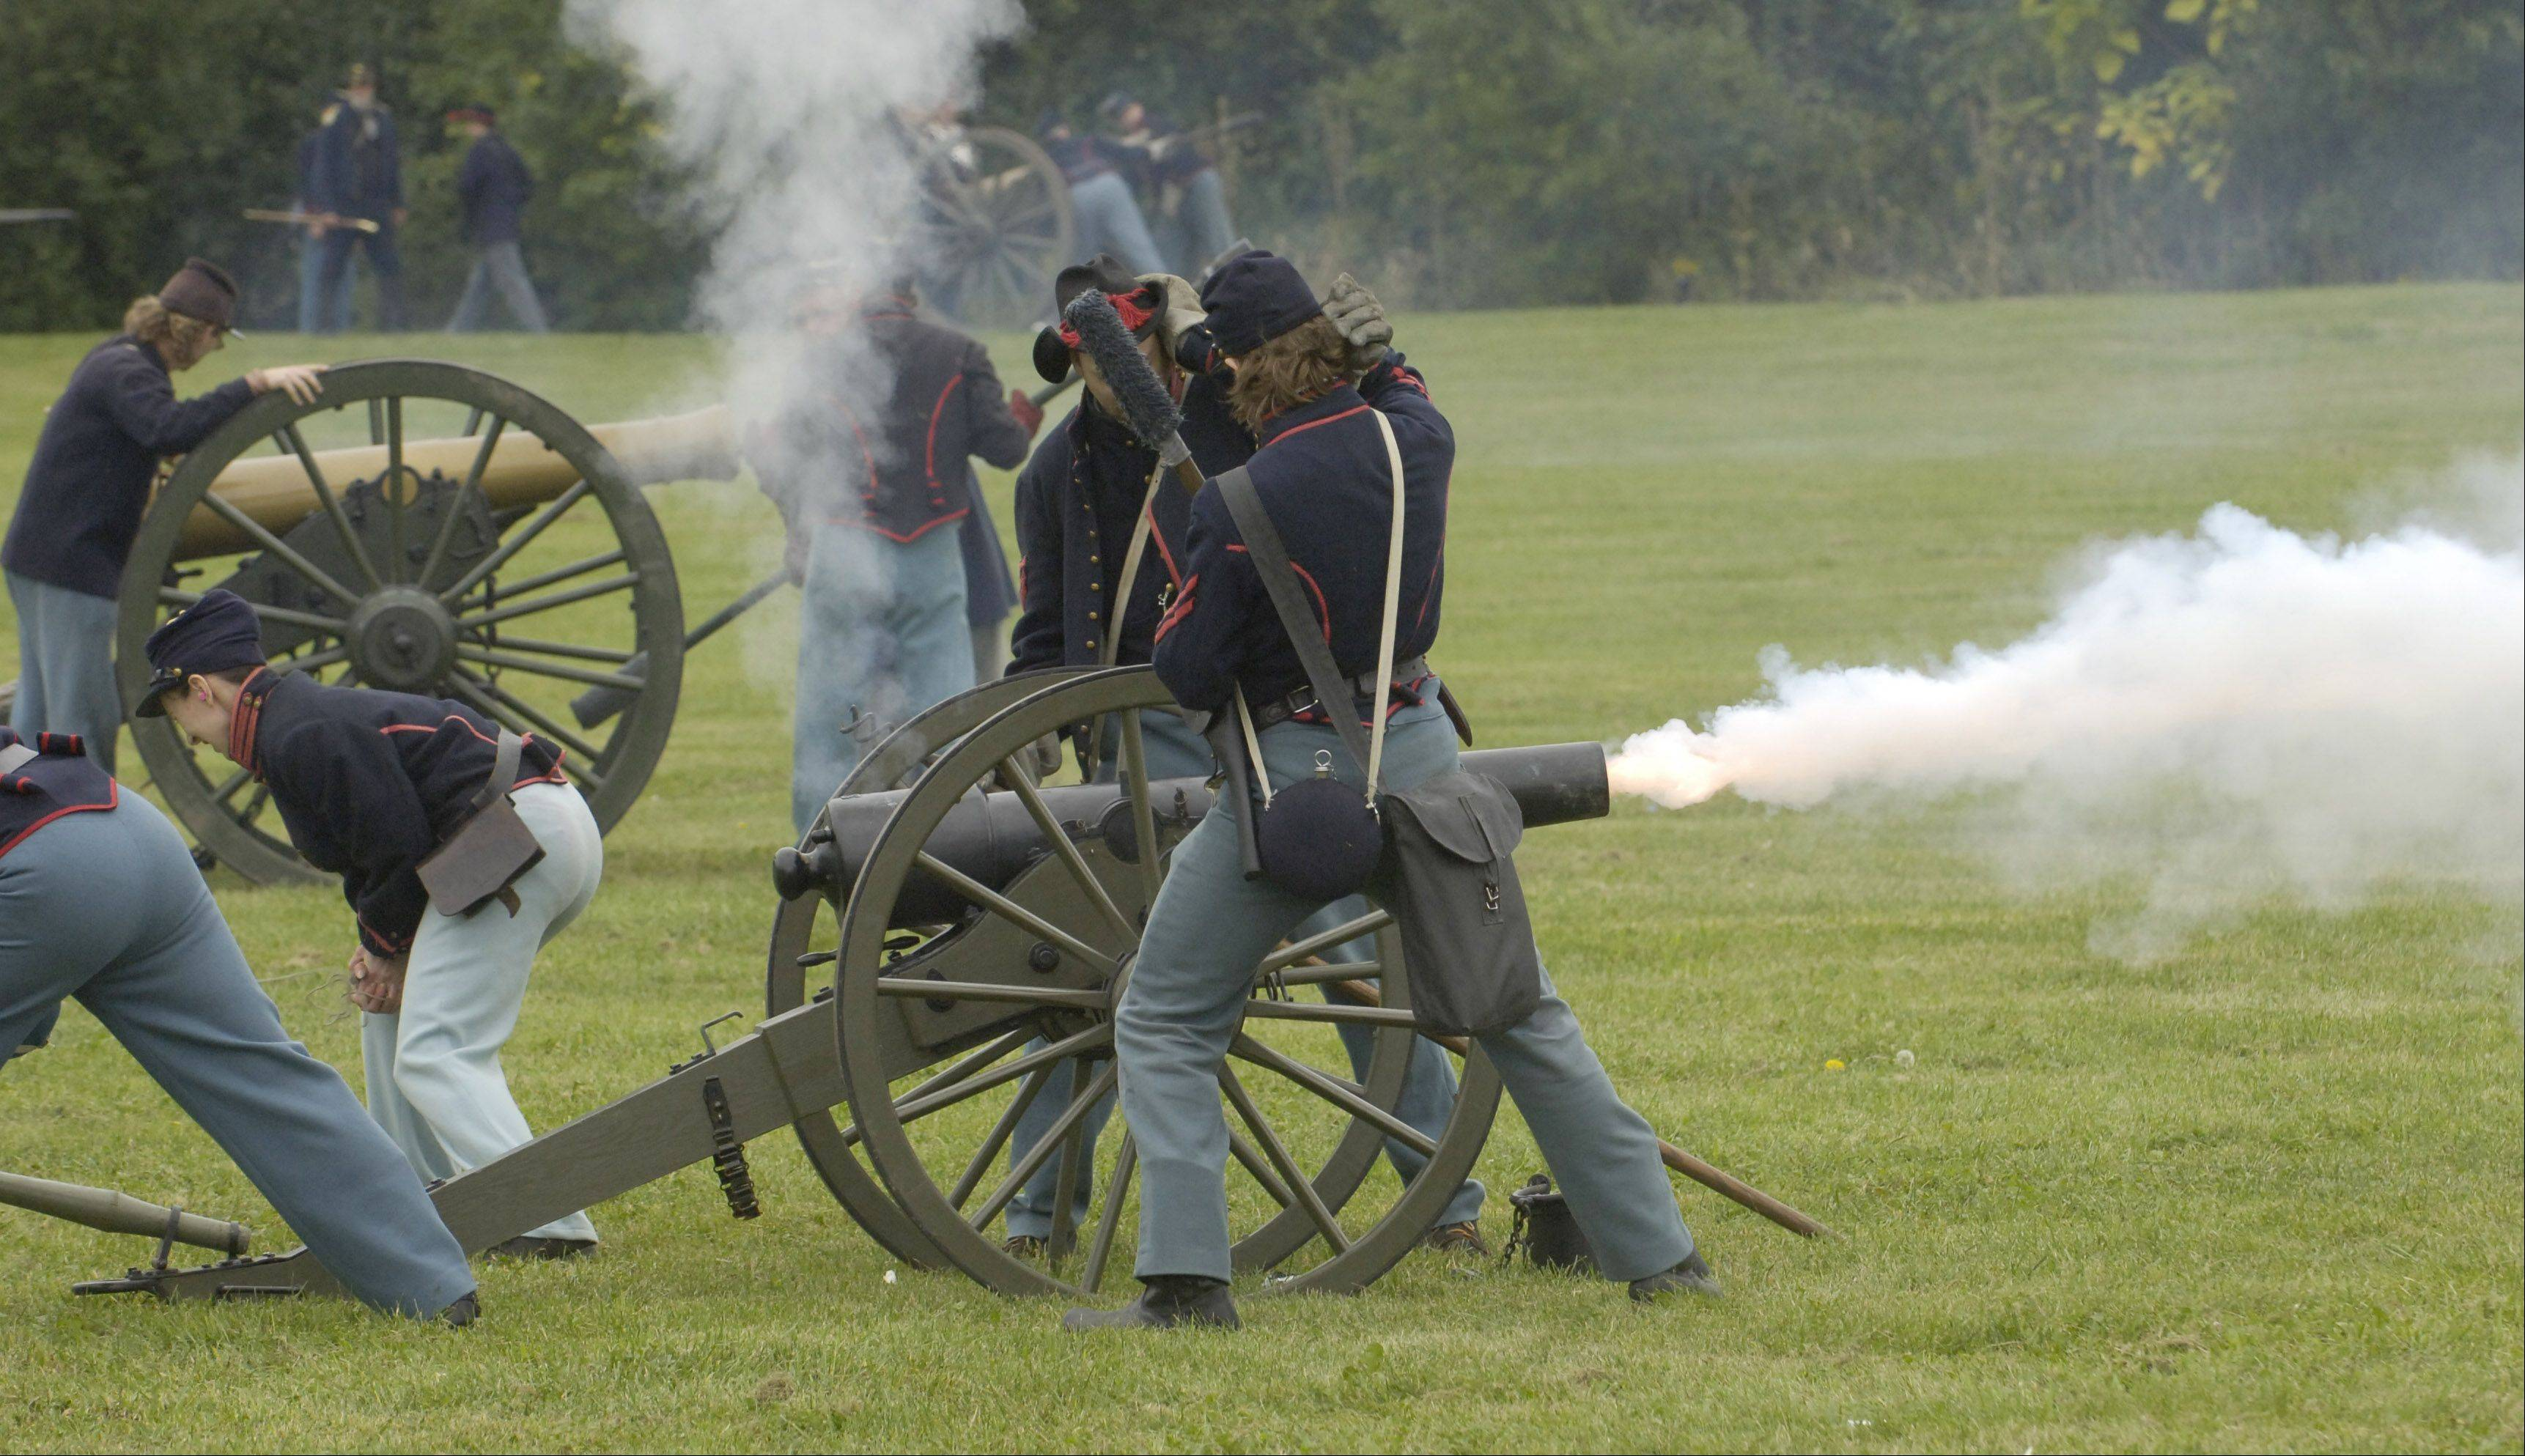 Union troops fire their artillery pieces during Civil War Days at Lehmann Mansion in Lake Villa.